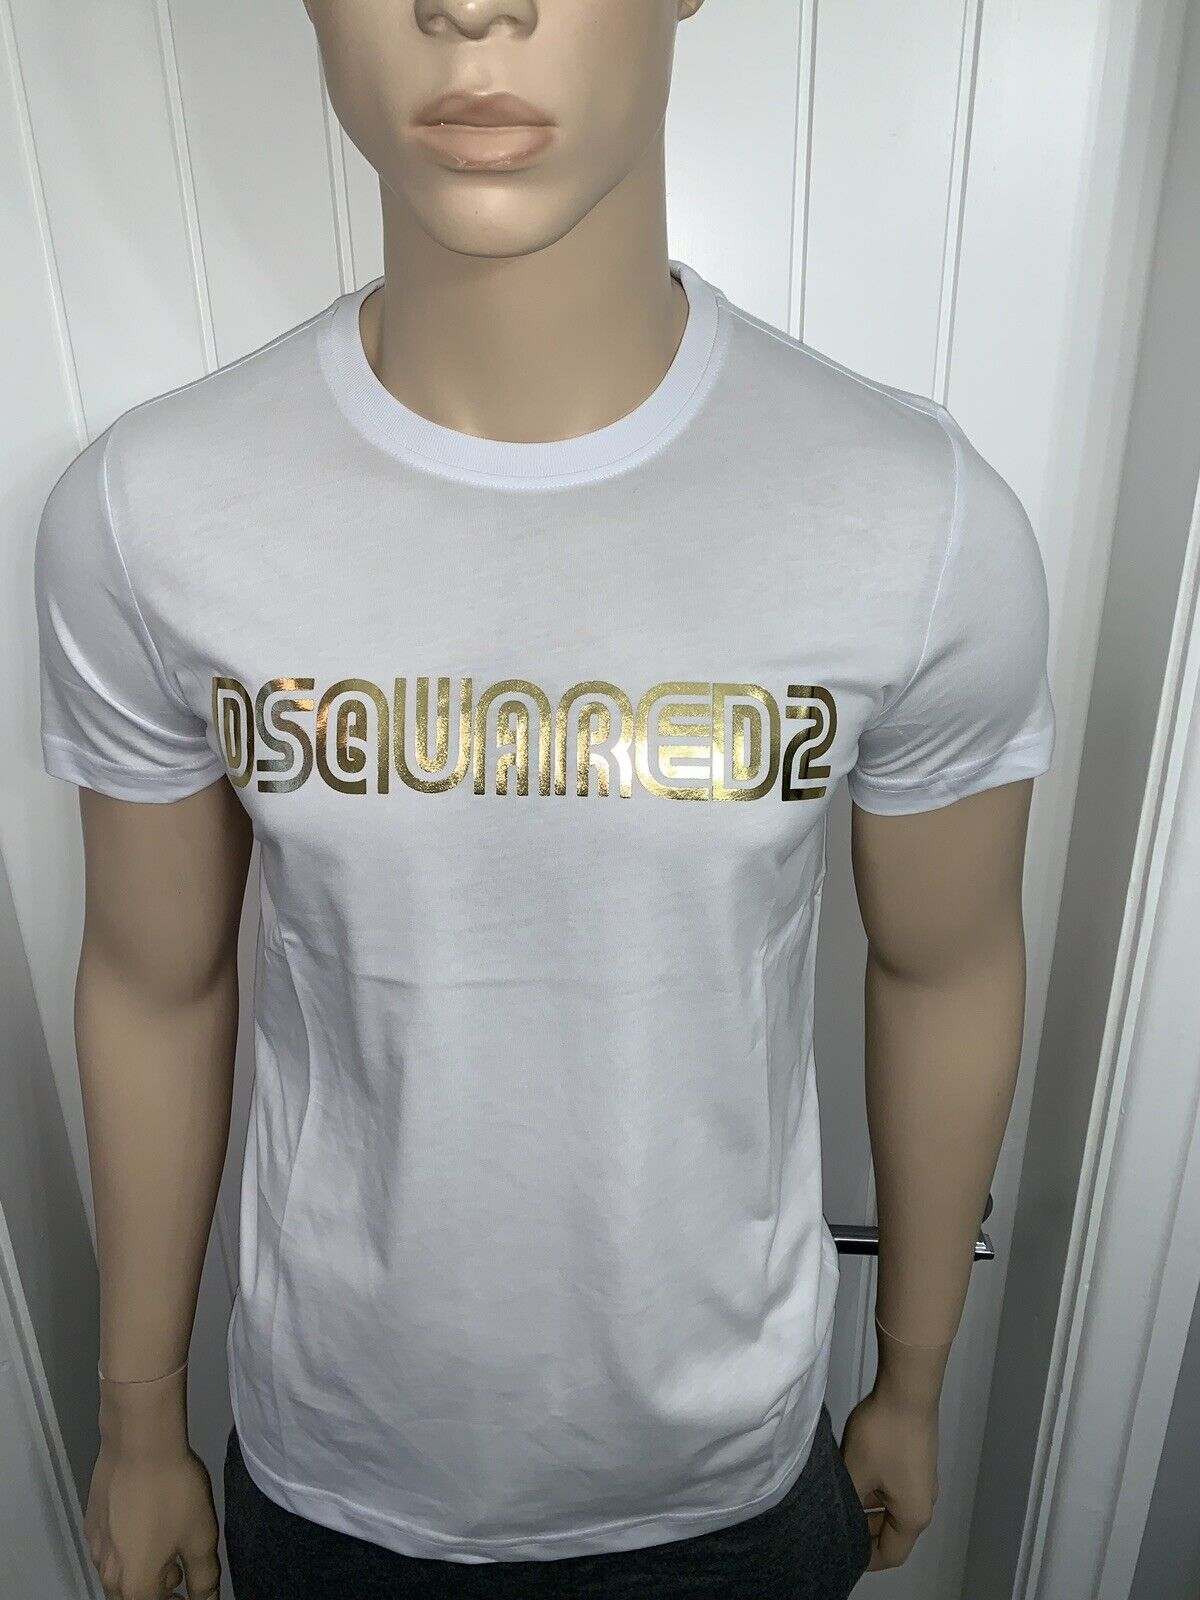 Men's Dsquared Tshirt Bargain Small Price